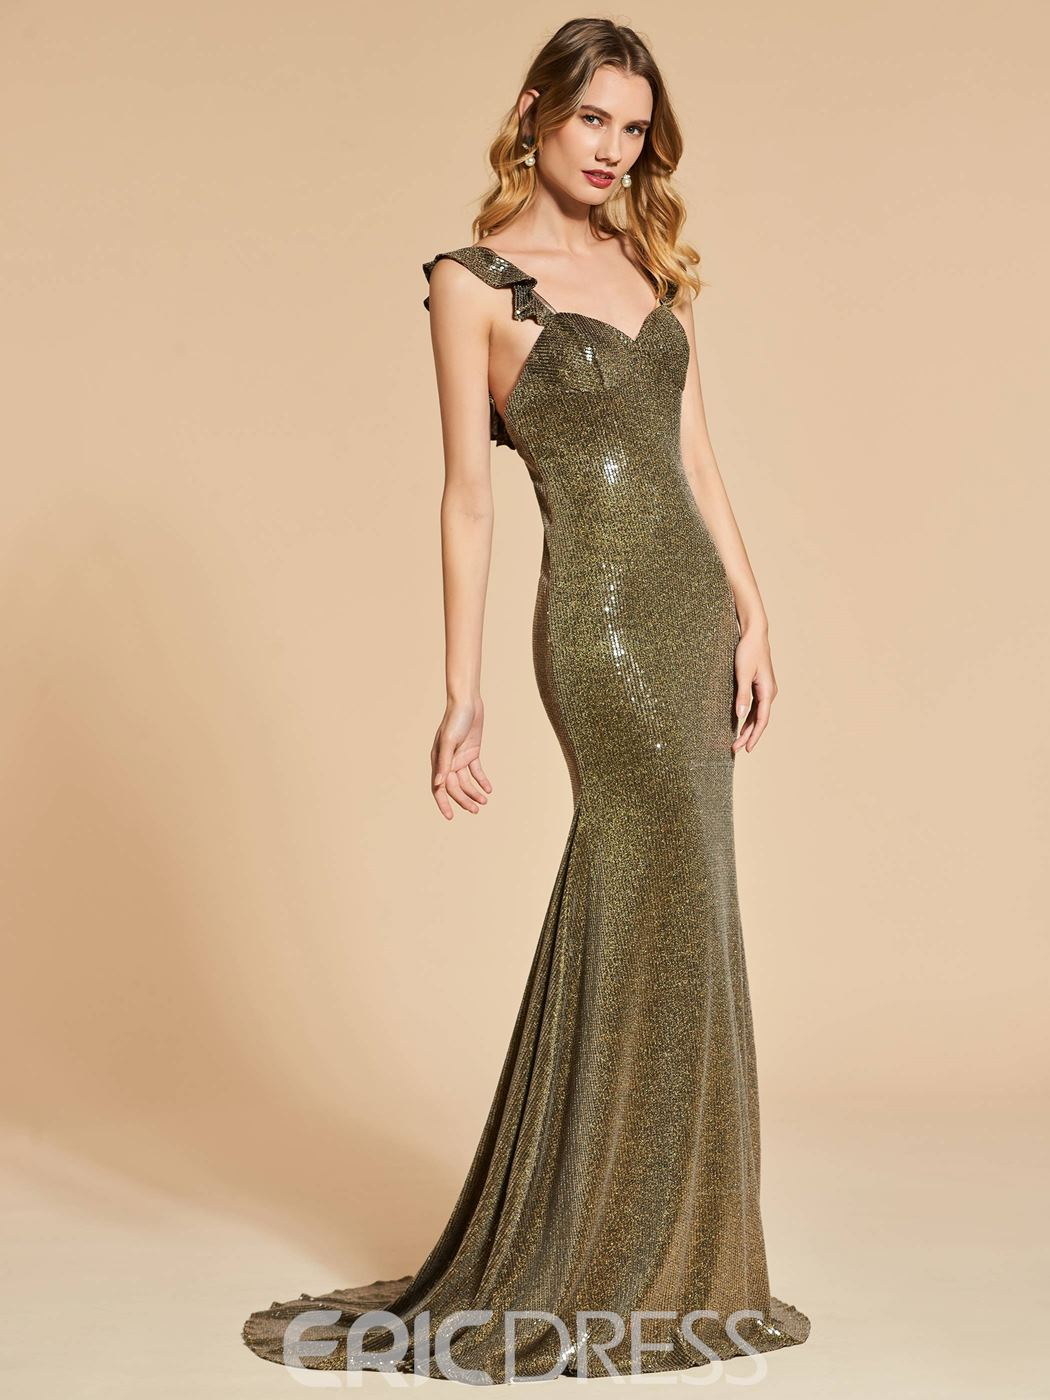 bc5f8964a029f Ericdress Straps Sequin Backless Mermaid Reflective Evening Dress(13091469)